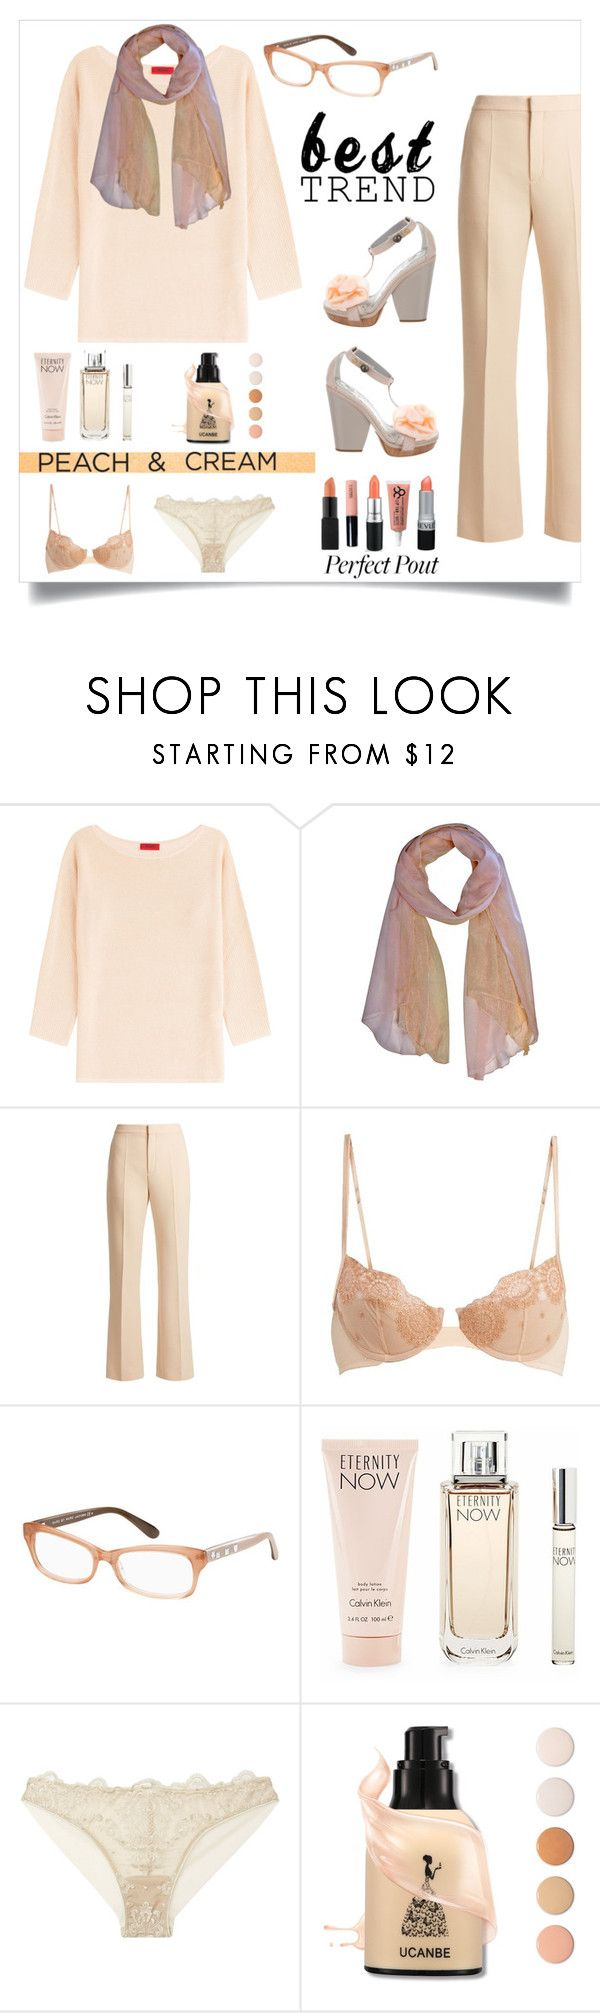 """""""best trend/peaches and cream"""" by im-karla-with-a-k ❤ liked on Polyvore featuring HUGO, Chloé, La Perla, Marc by Marc Jacobs, Calvin Klein, I.D. SARRIERI, Reed Krakoff and peachlipstick"""